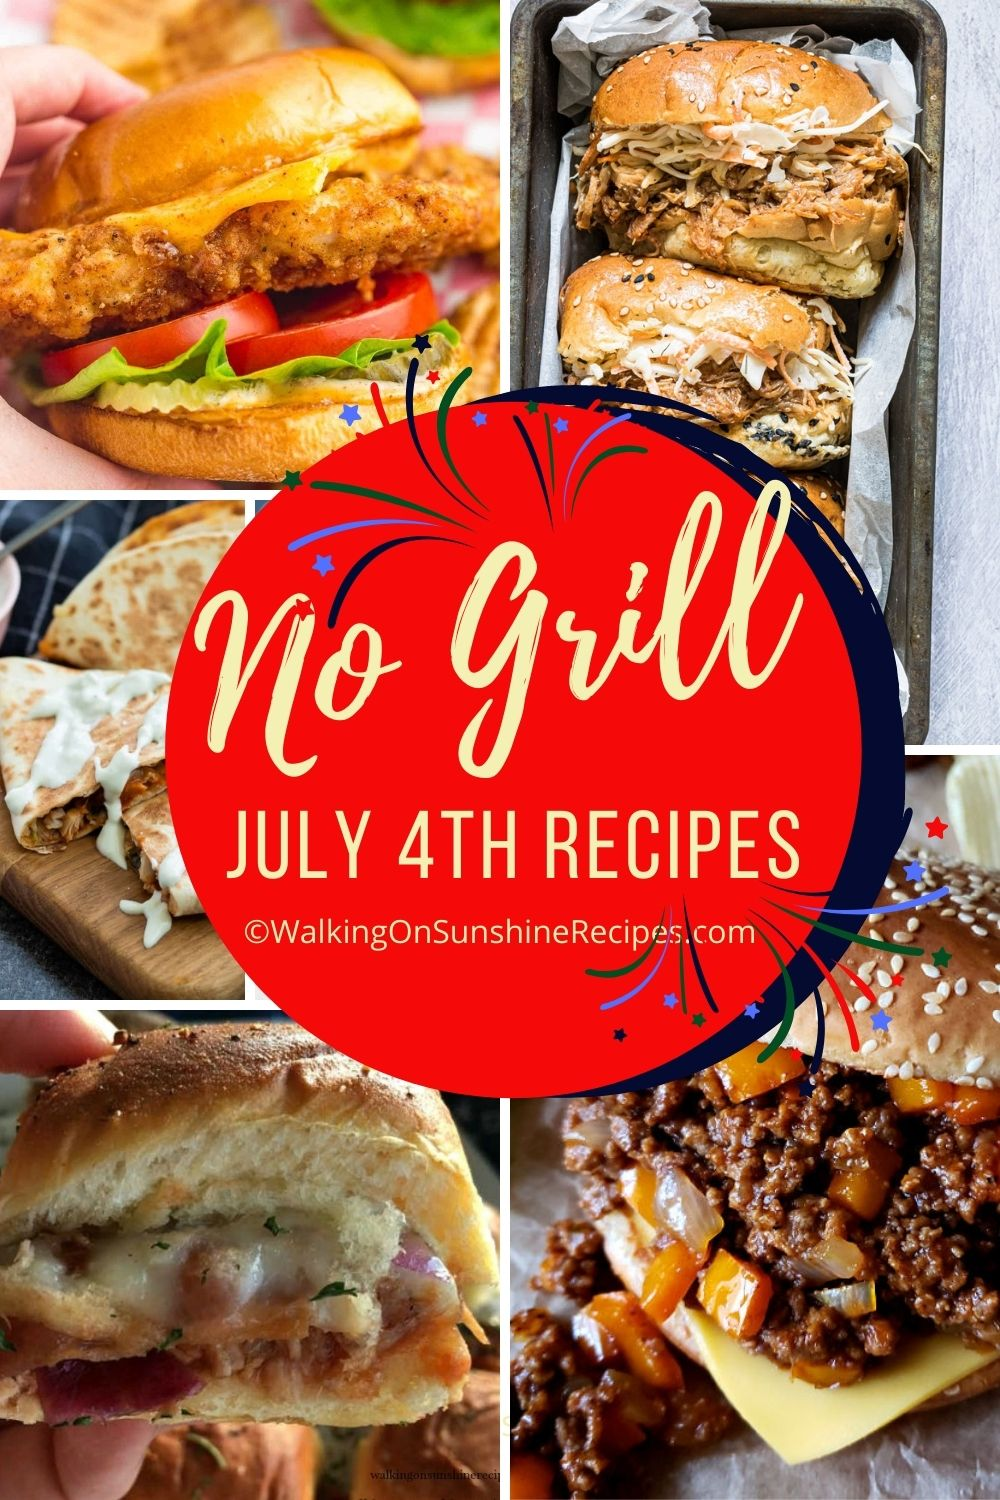 recipes for July 4th that don't require a barbecue grill.